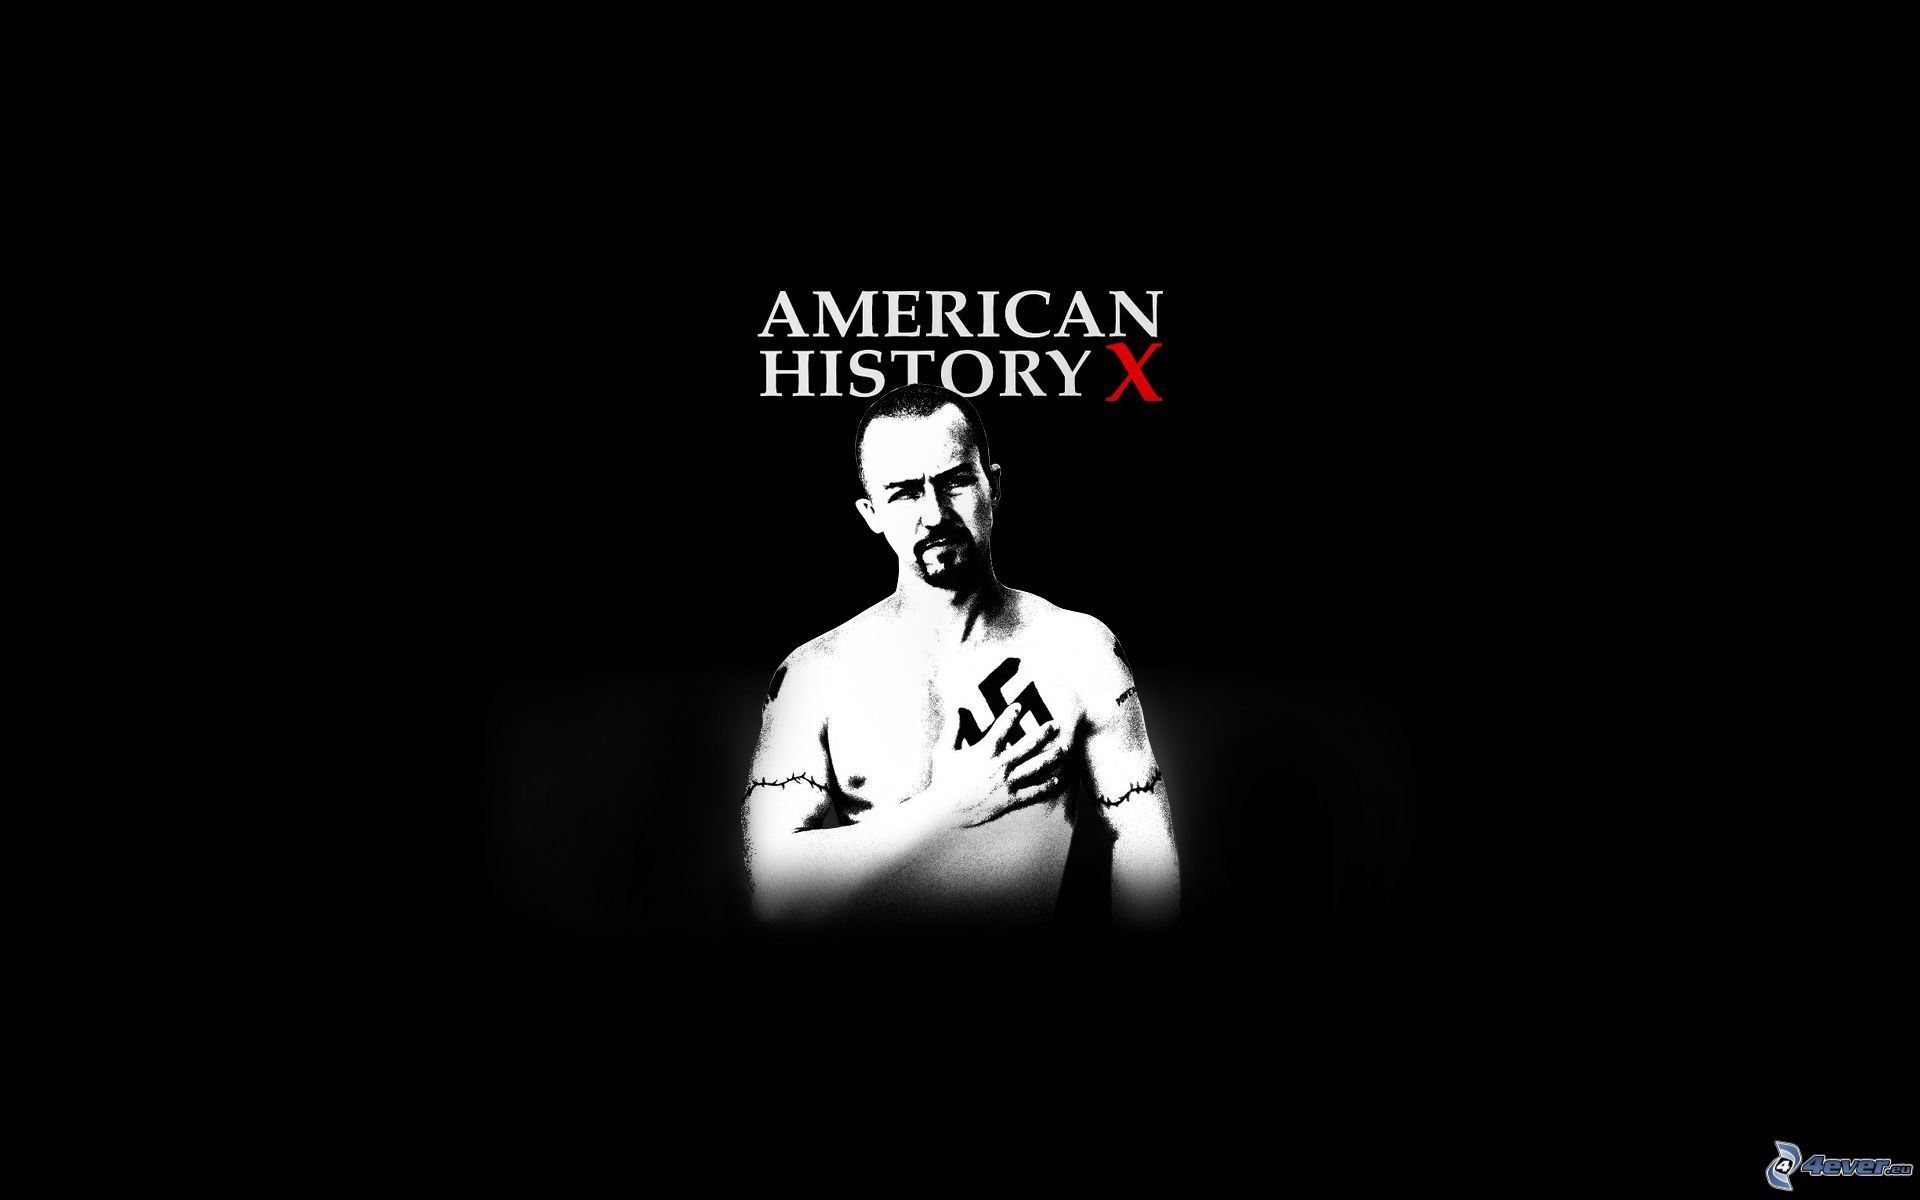 American History X Wallpaper Images TheCelebrityPix 1920x1200